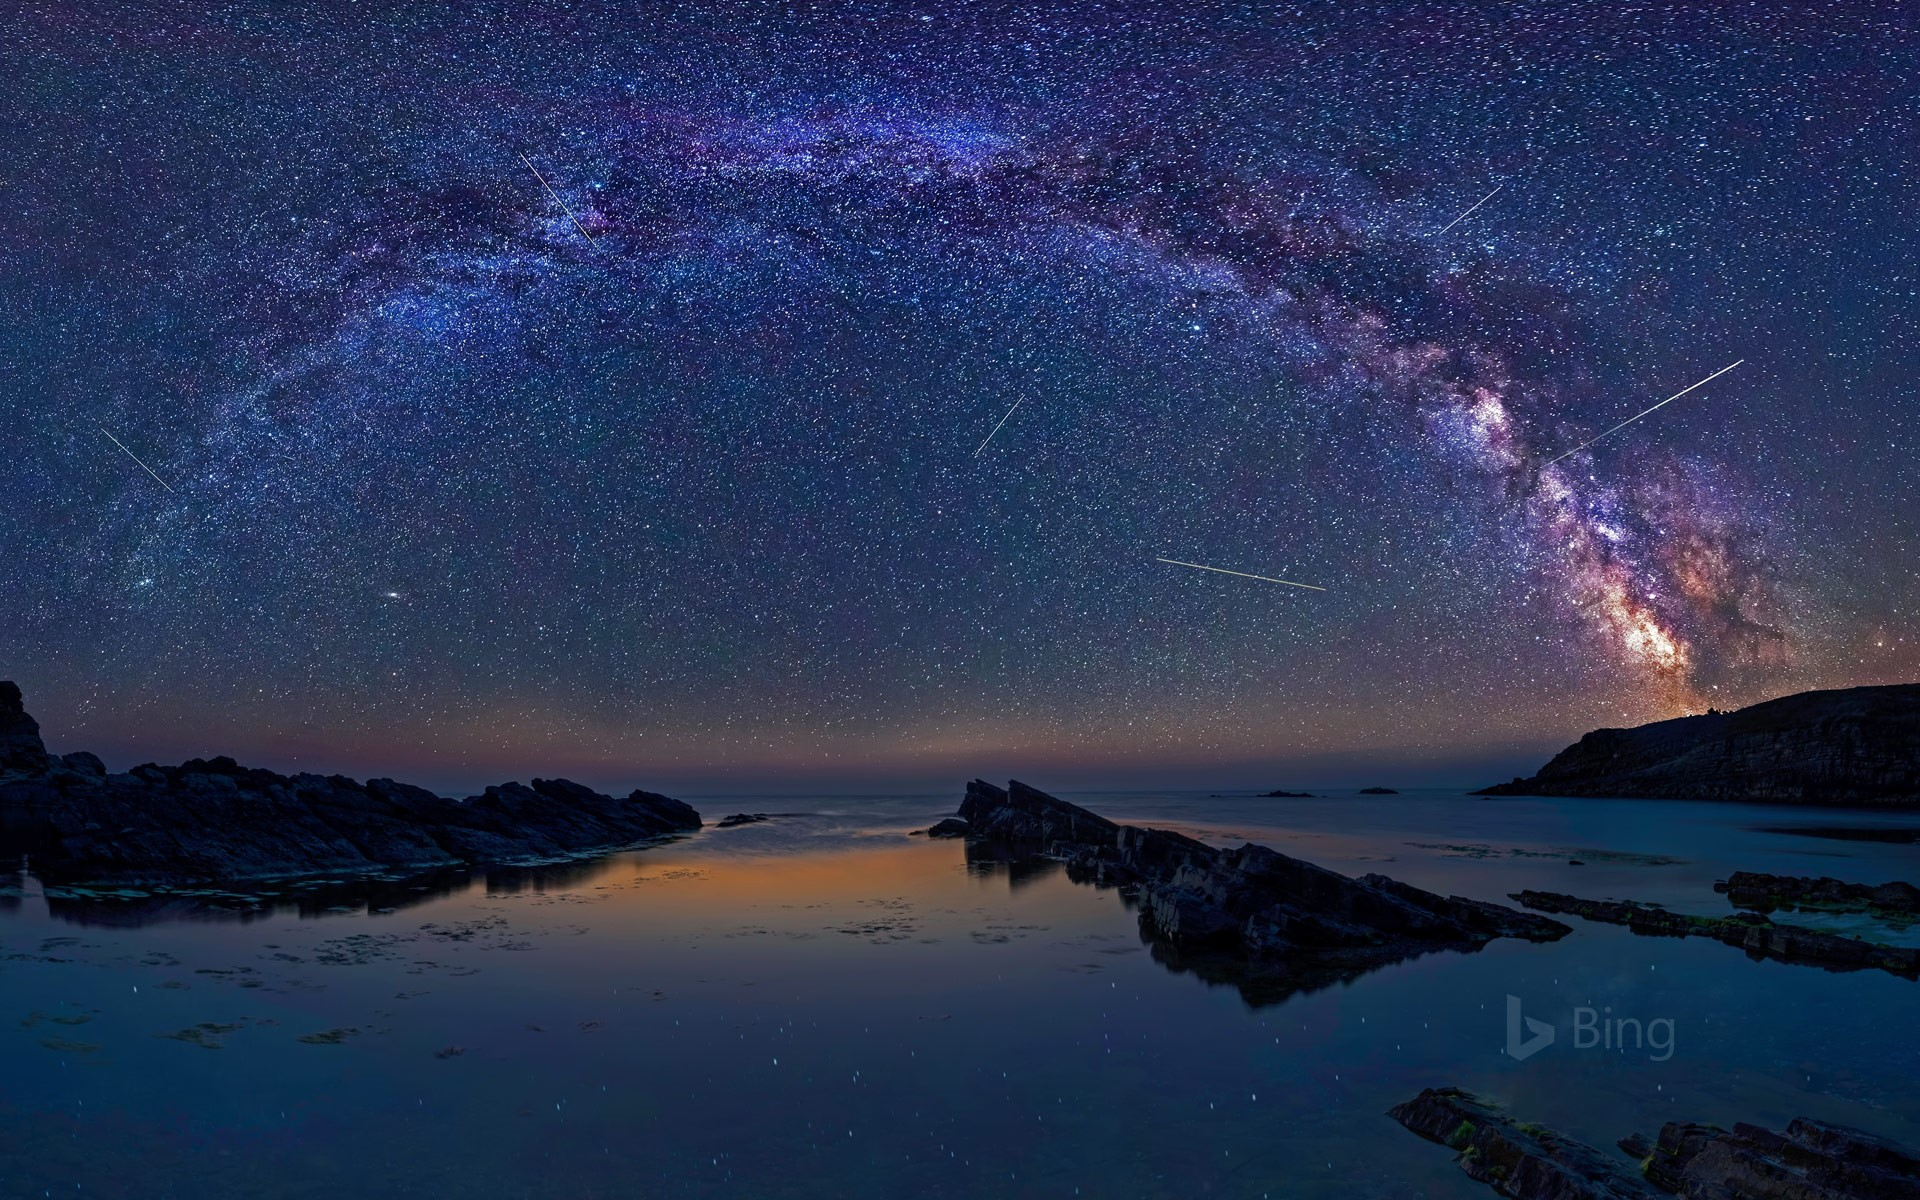 The Perseids meteor shower over Sinemorets, Bulgaria